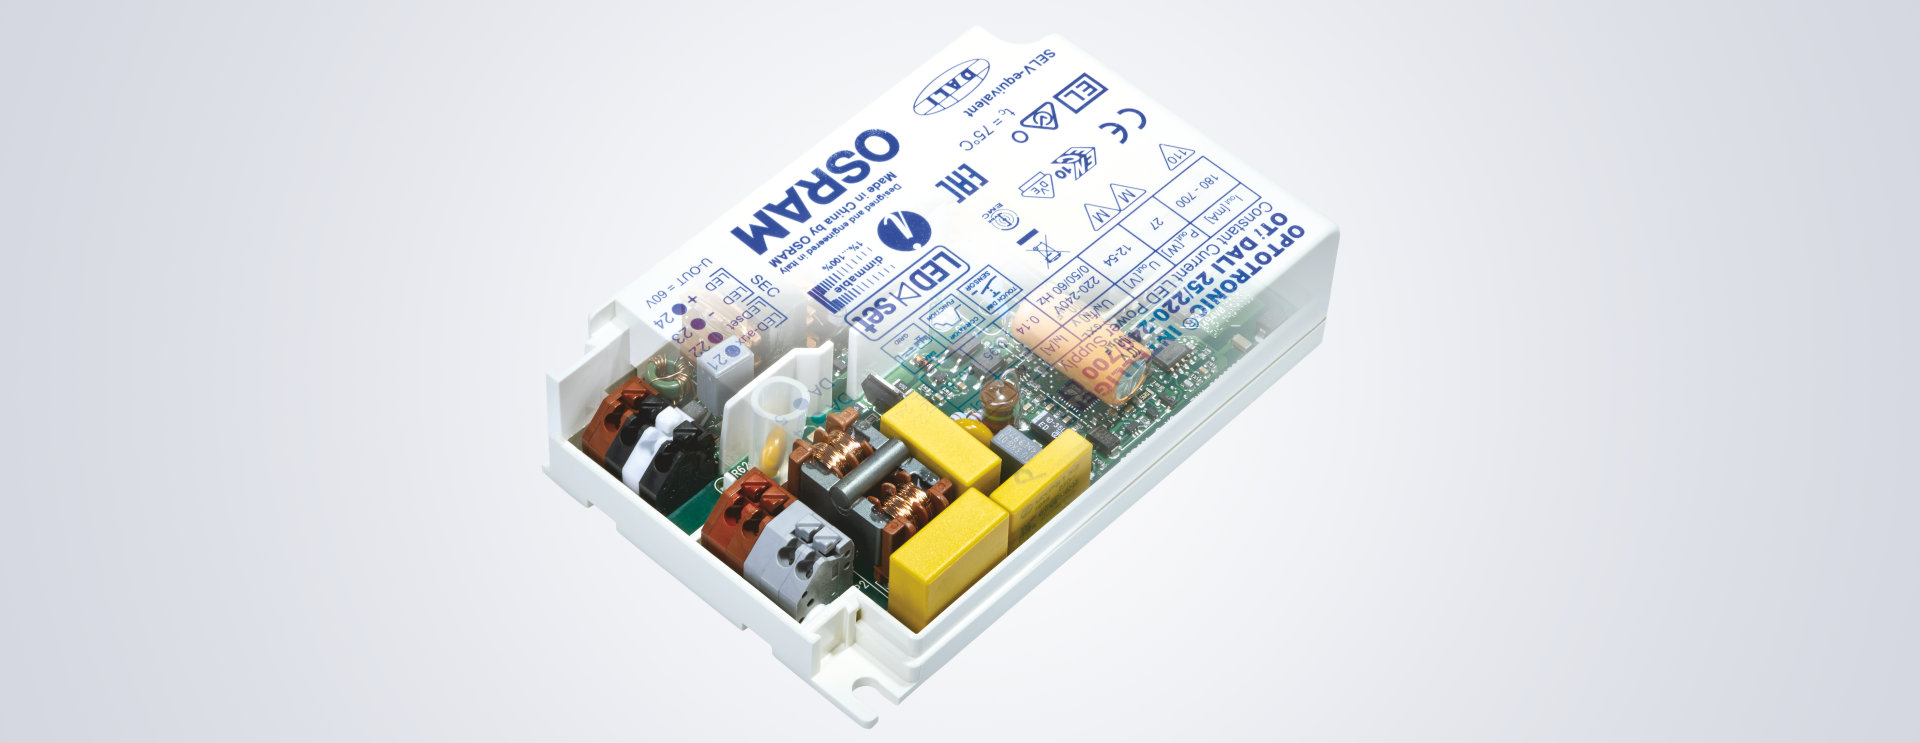 hight resolution of the osram range of constant current led drivers